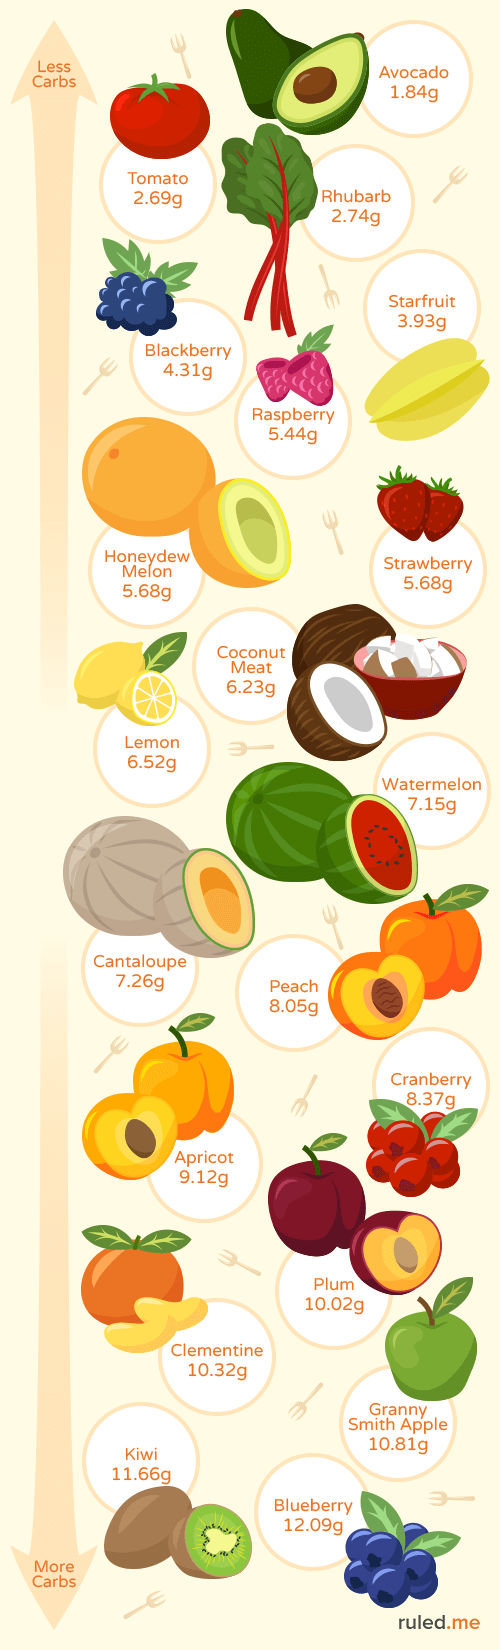 low carb keto fruits